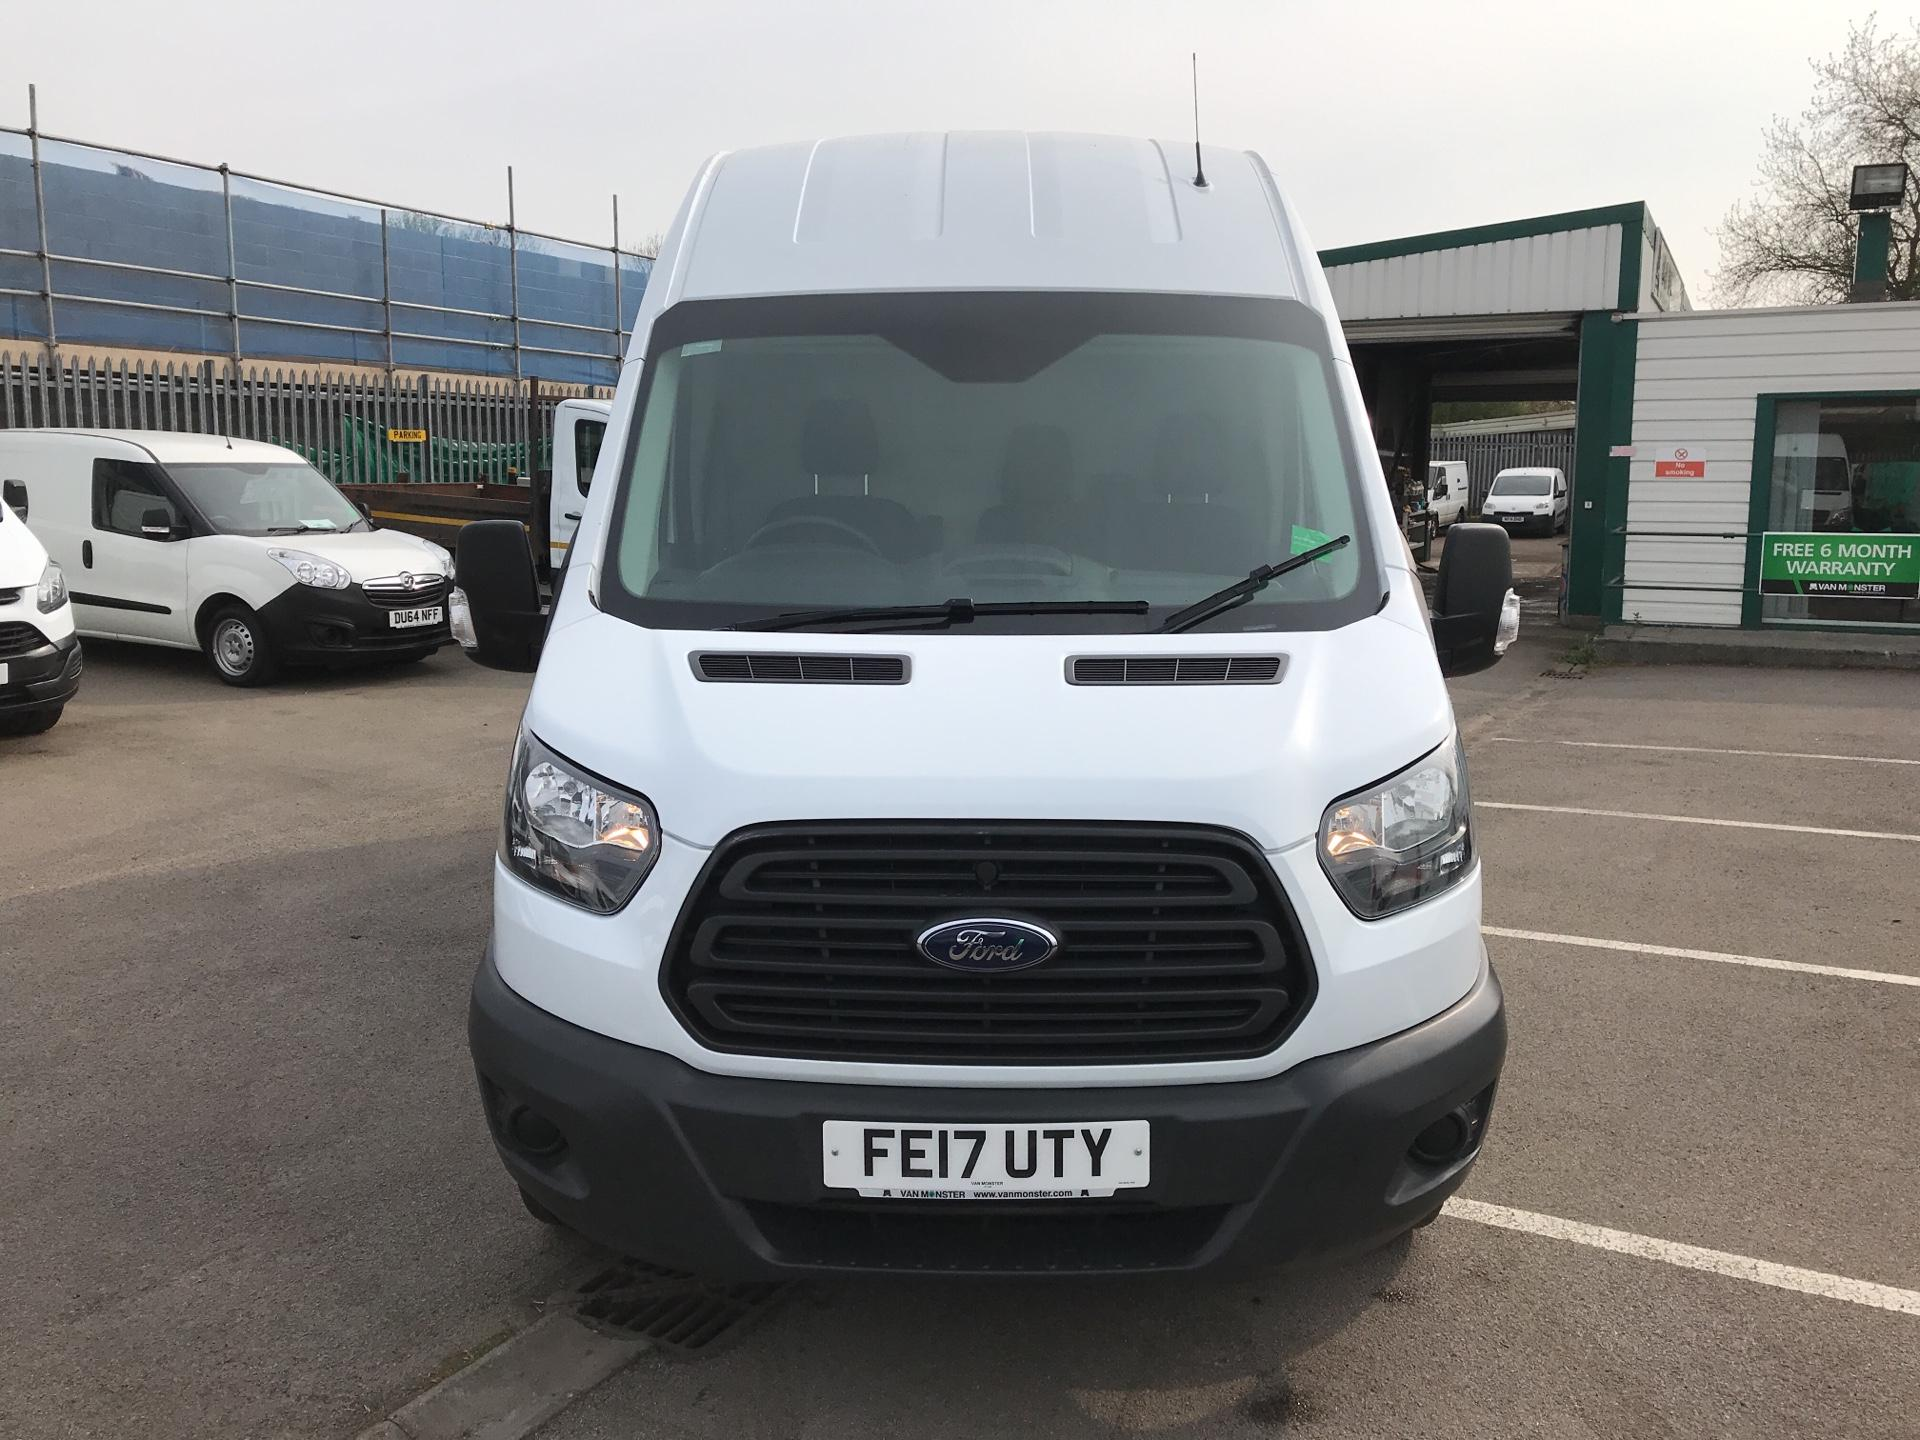 2017 Ford Transit 350 L3 H3 VAN 130PS EURO 6 (FE17UTY) Image 8